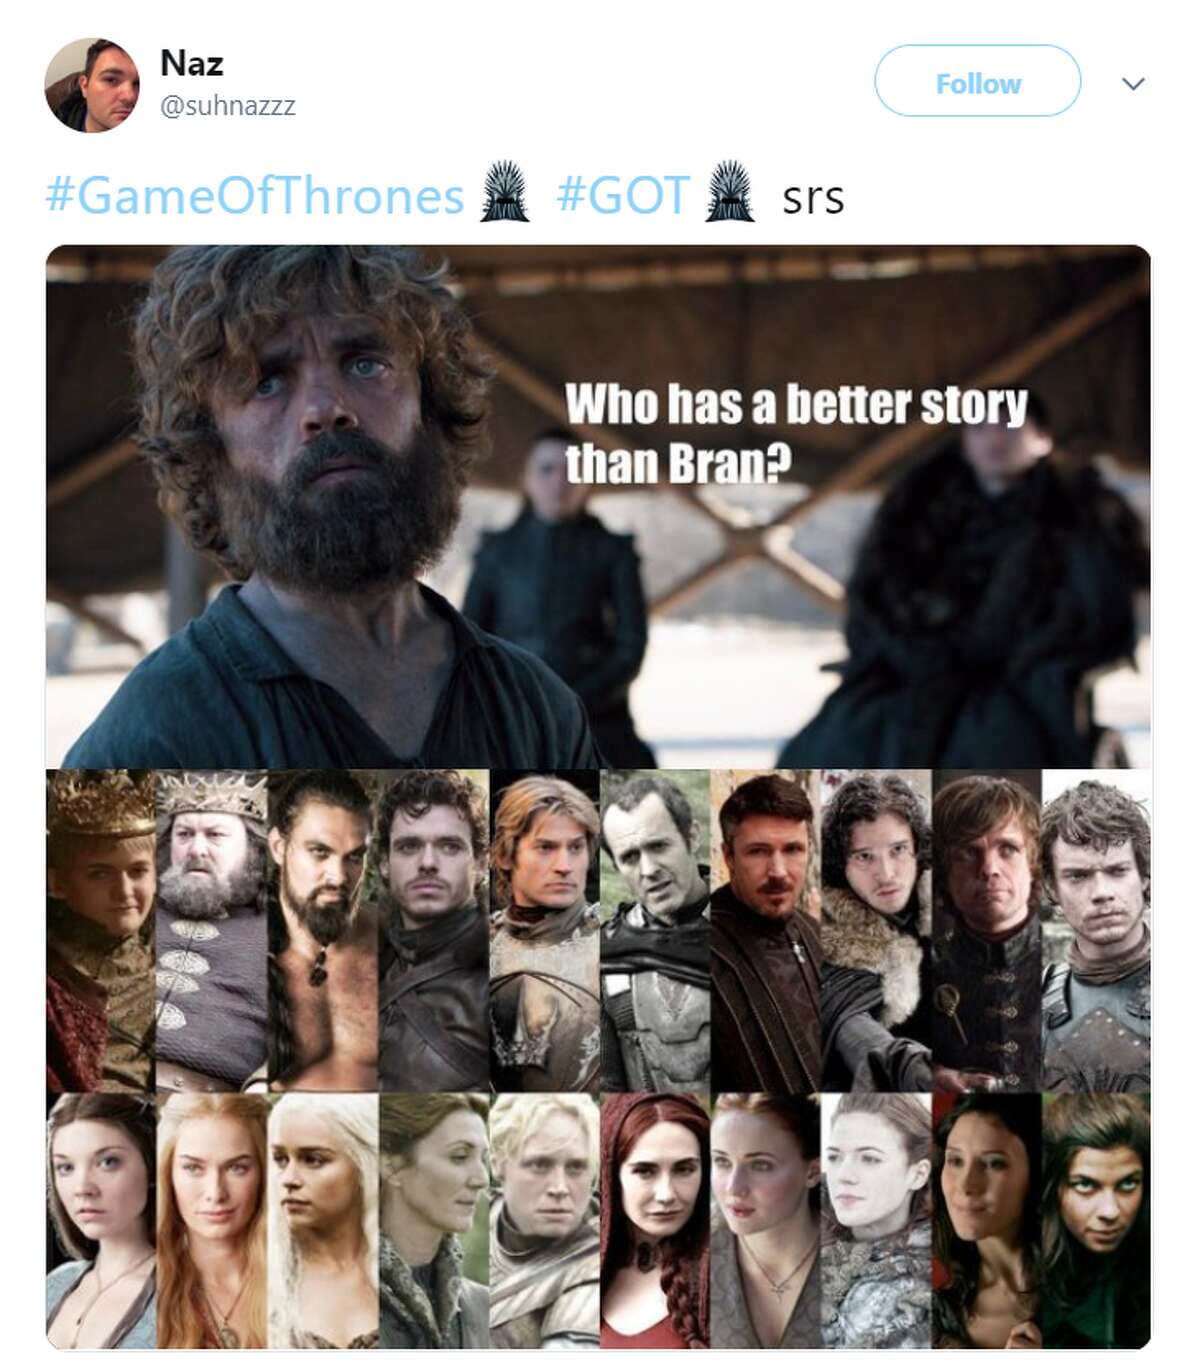 #GameOfThrones #GOT srs Twitter account:@suhnazzz